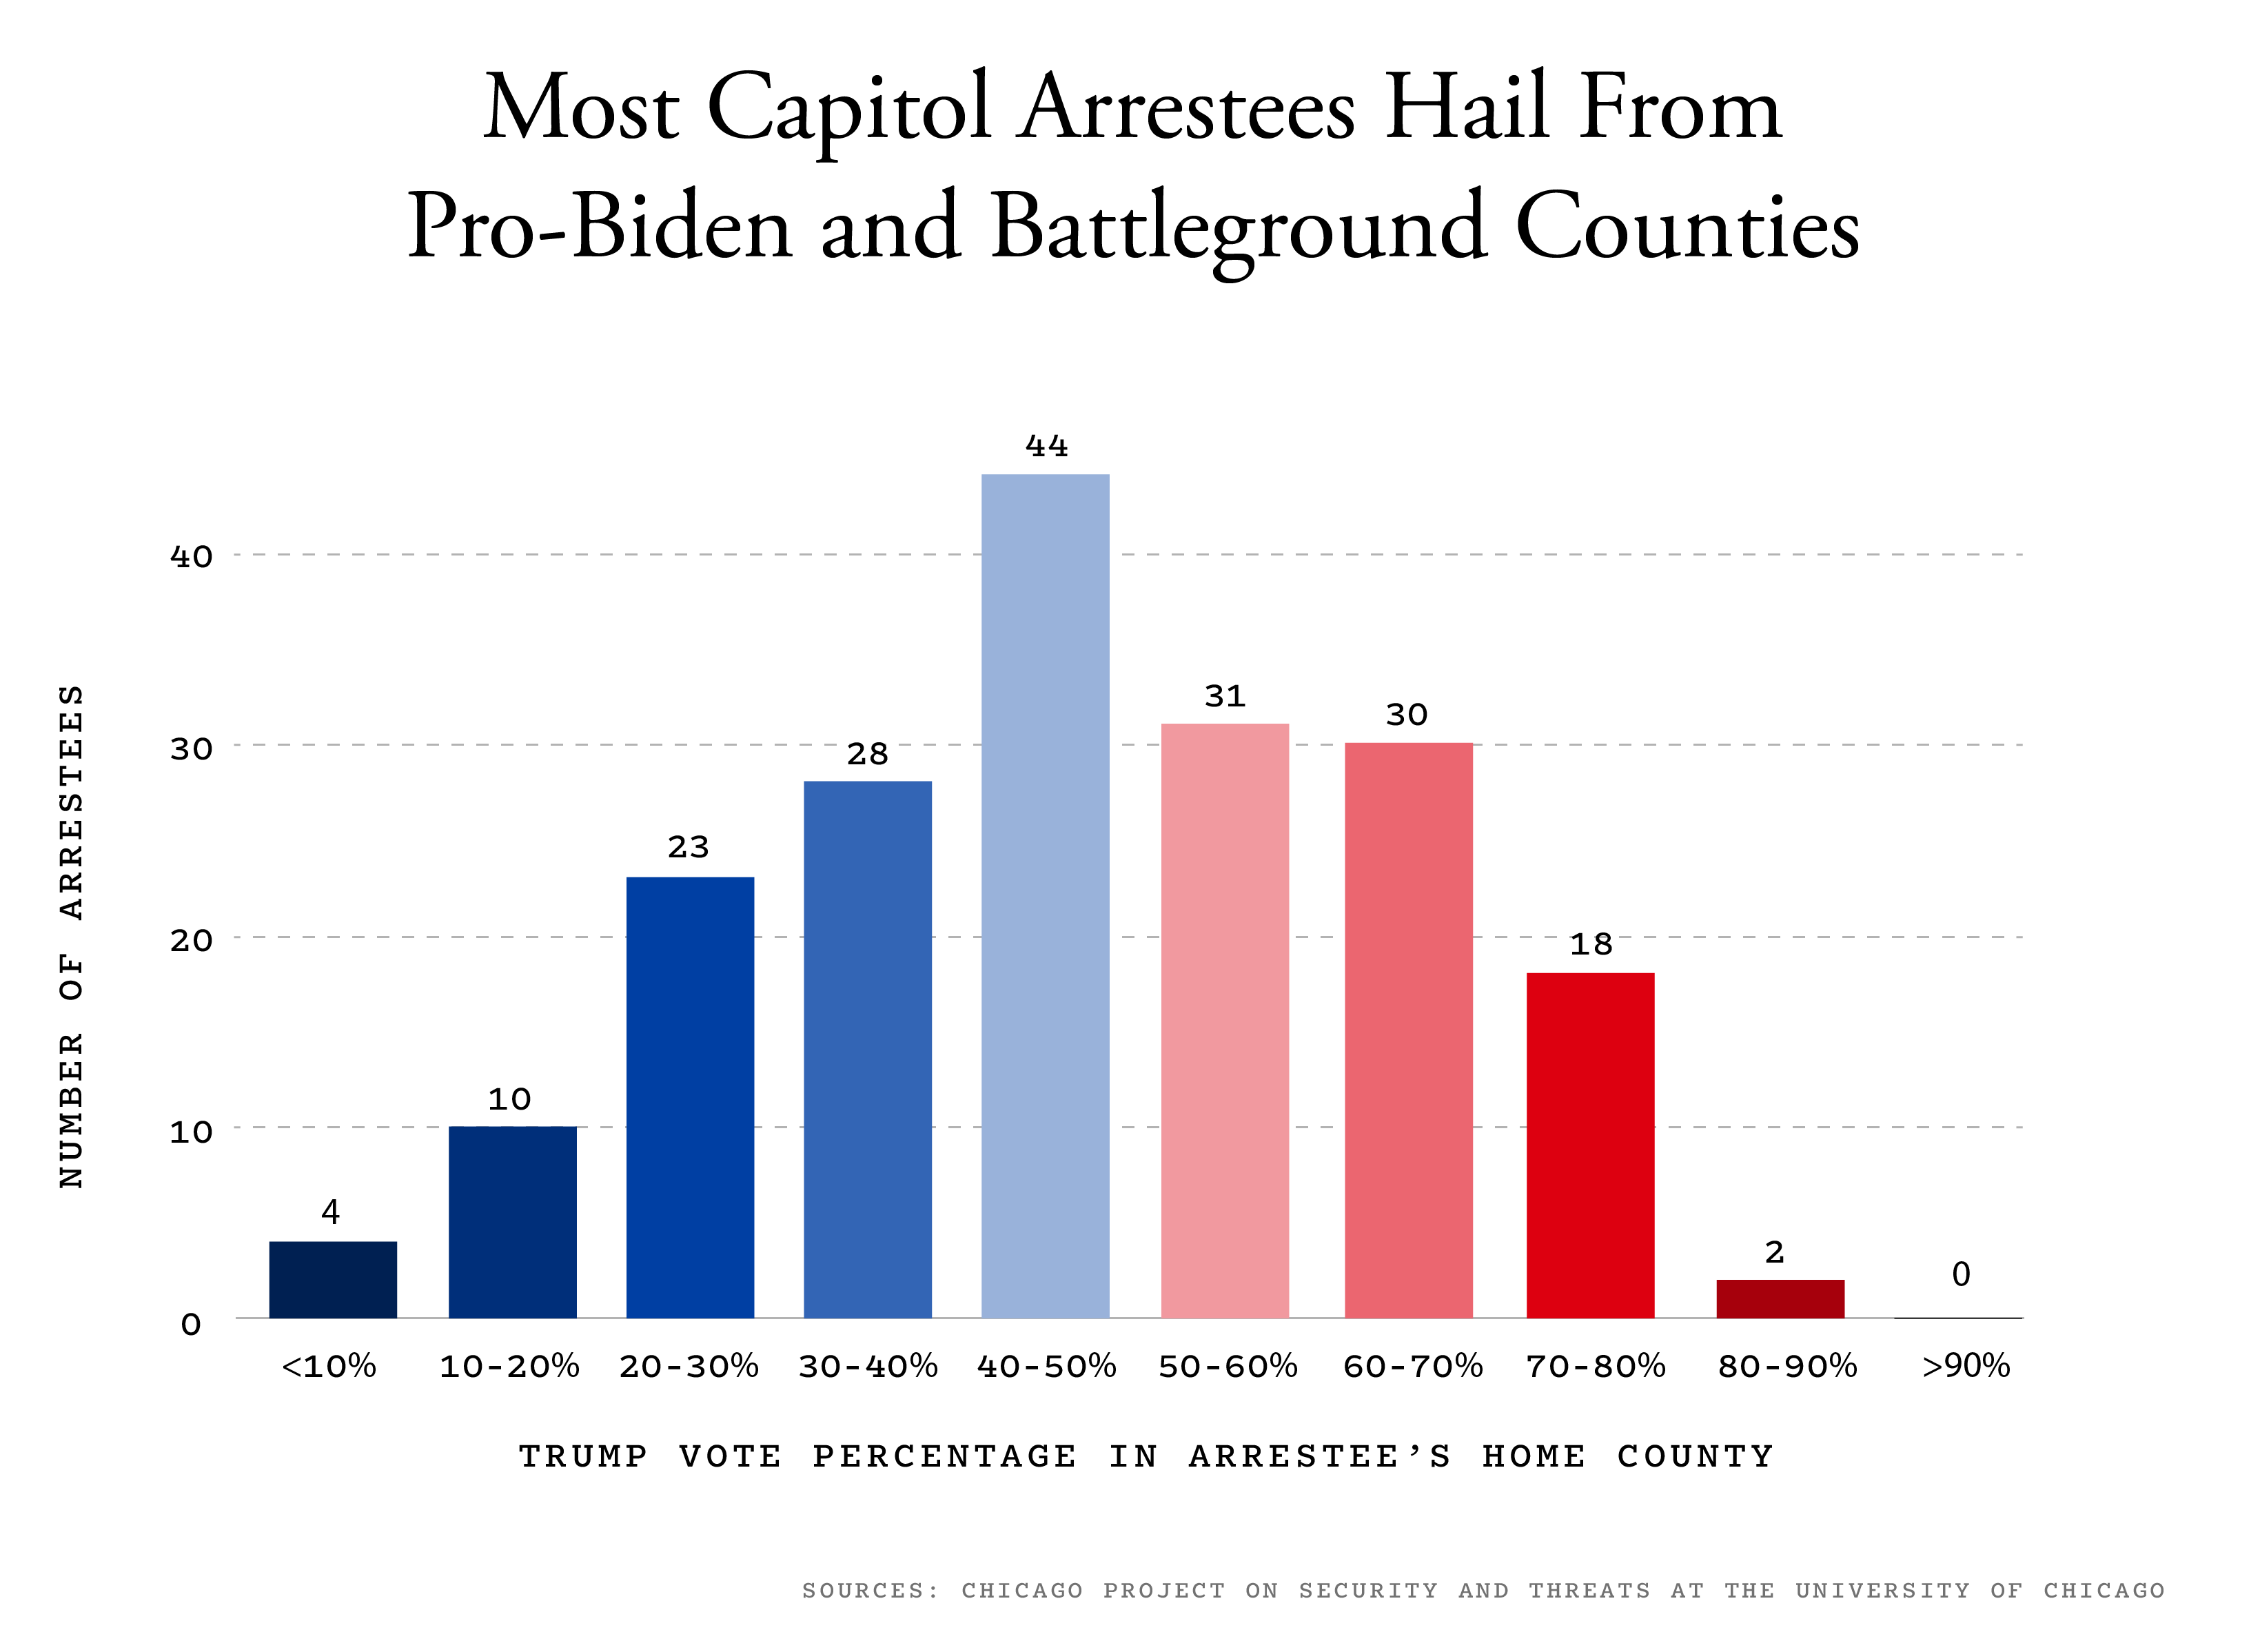 A graph of Capitol arrestees and where they are from.